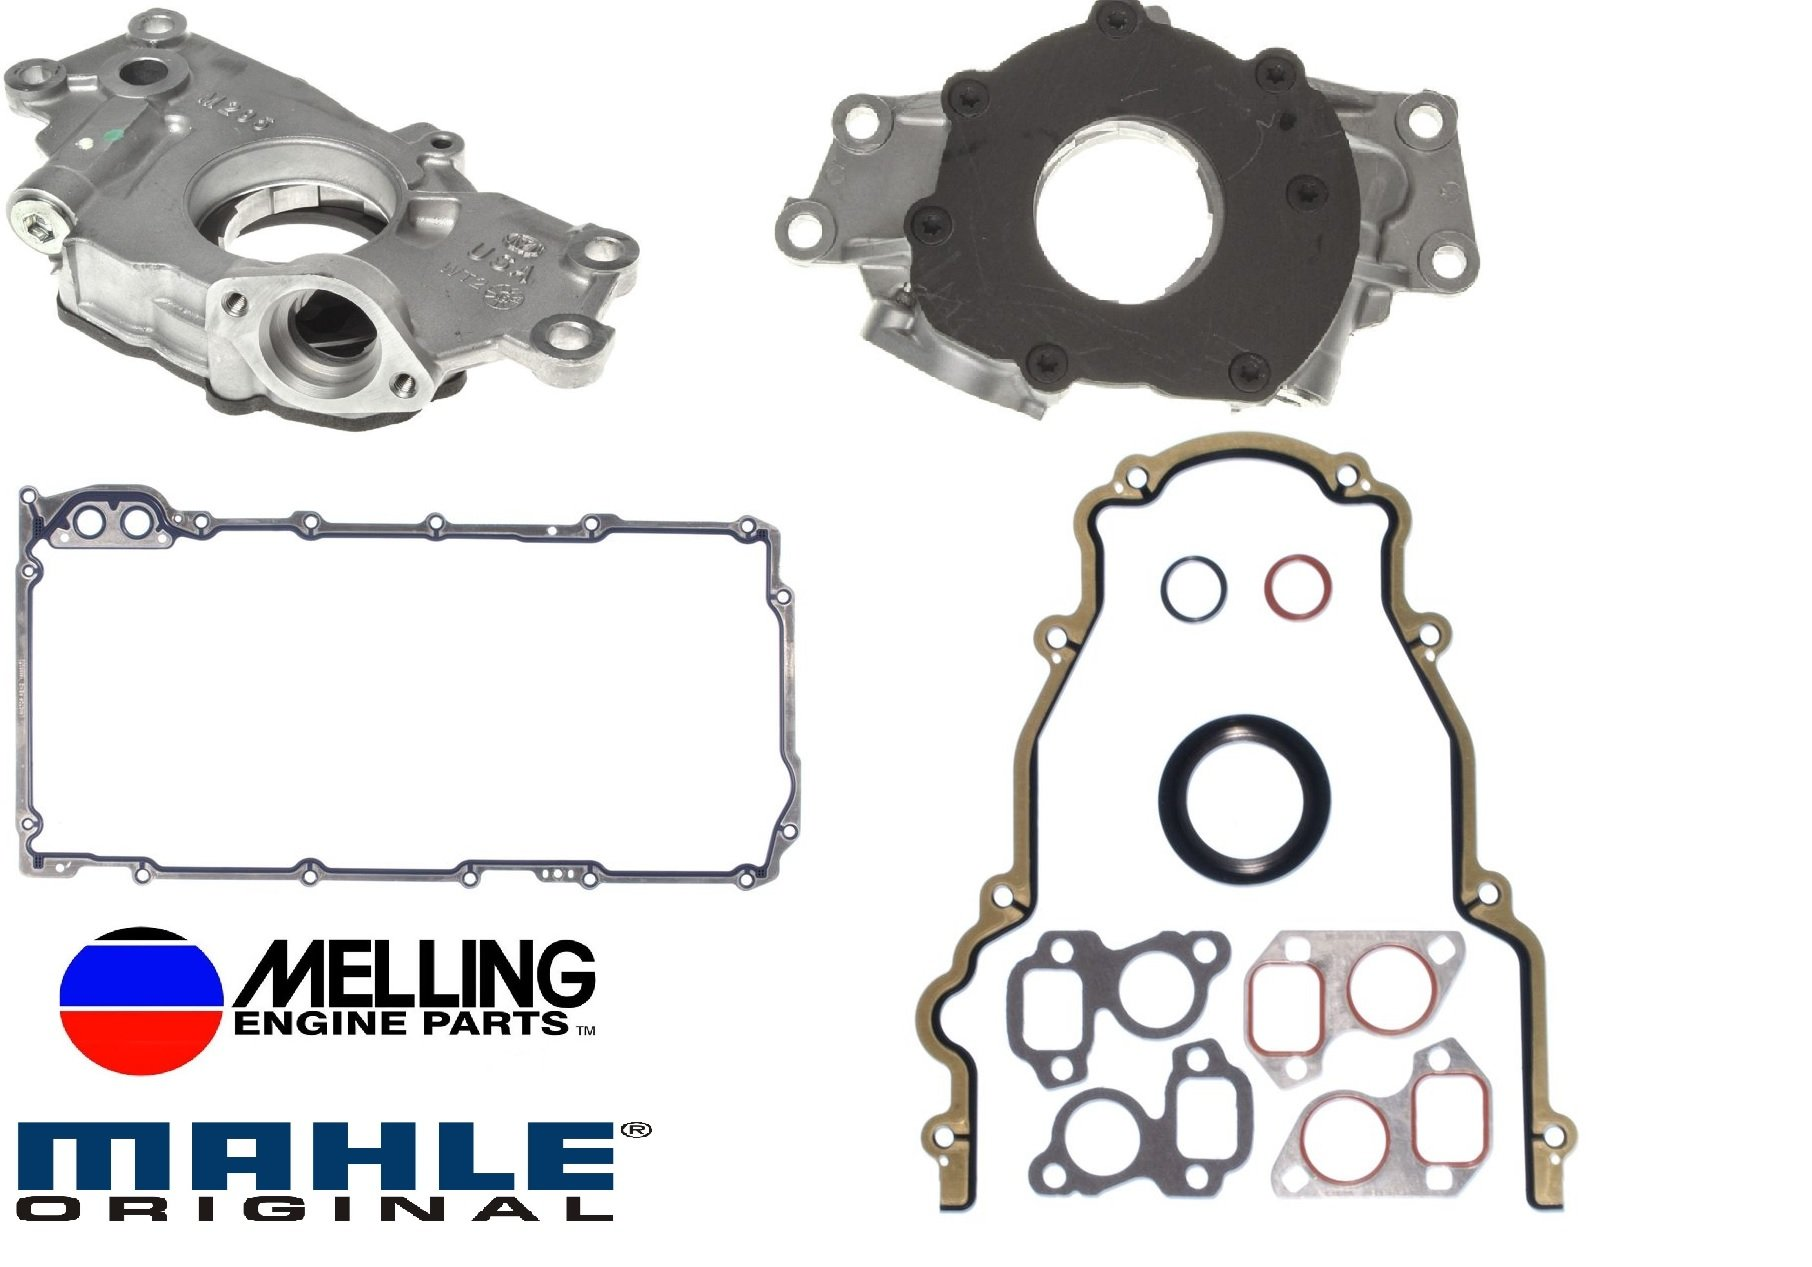 1999-2009 Chevrolet GMC 4.8L 5.3L 6.0L 325 Oil Pump & Replacement Gaskets (Oil Pump Change Kit) by Guardian Engine Kits